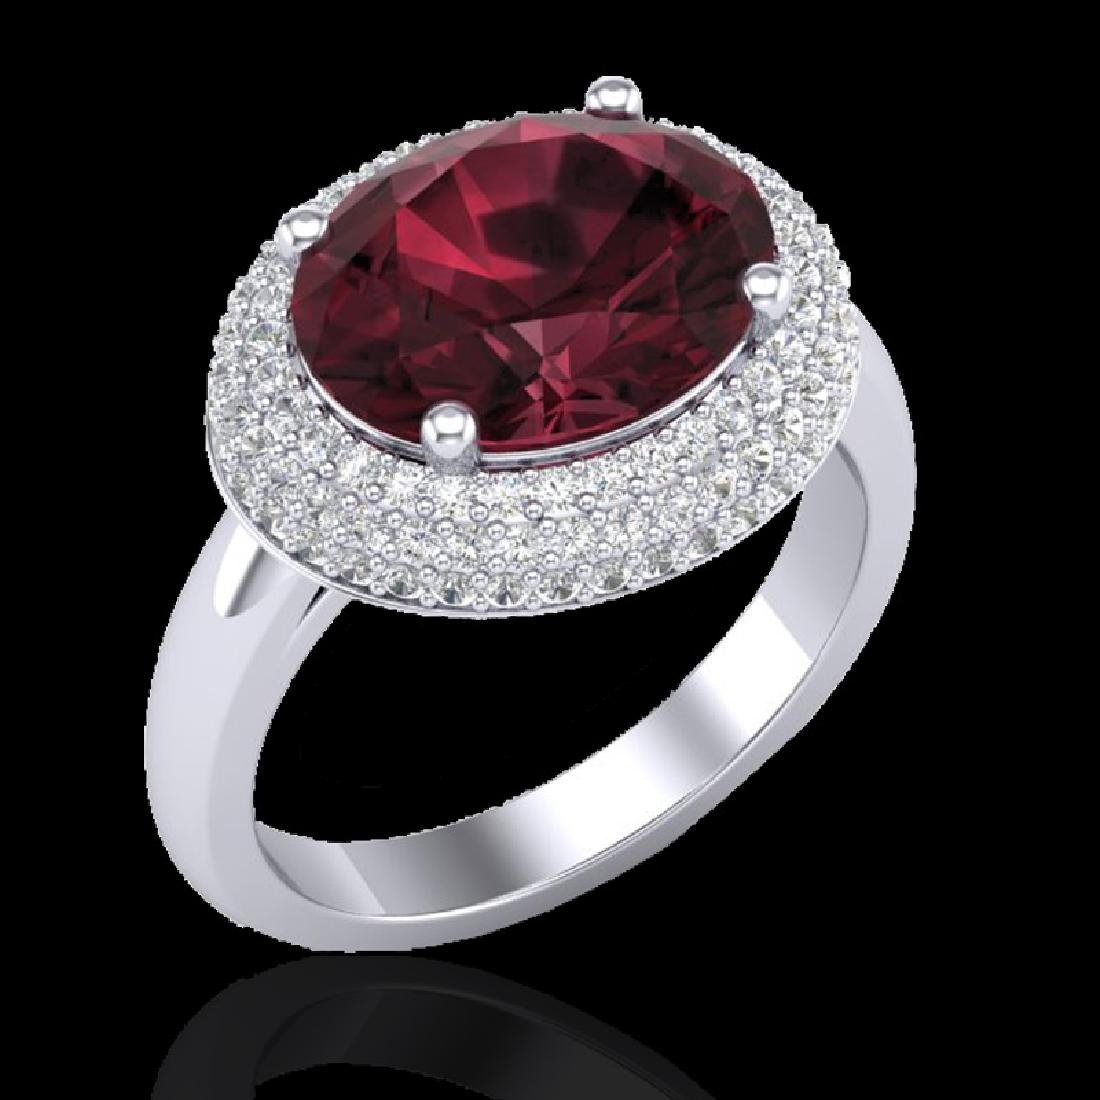 4.50 CTW Garnet & Micro Pave VS/SI Diamond Ring 18K